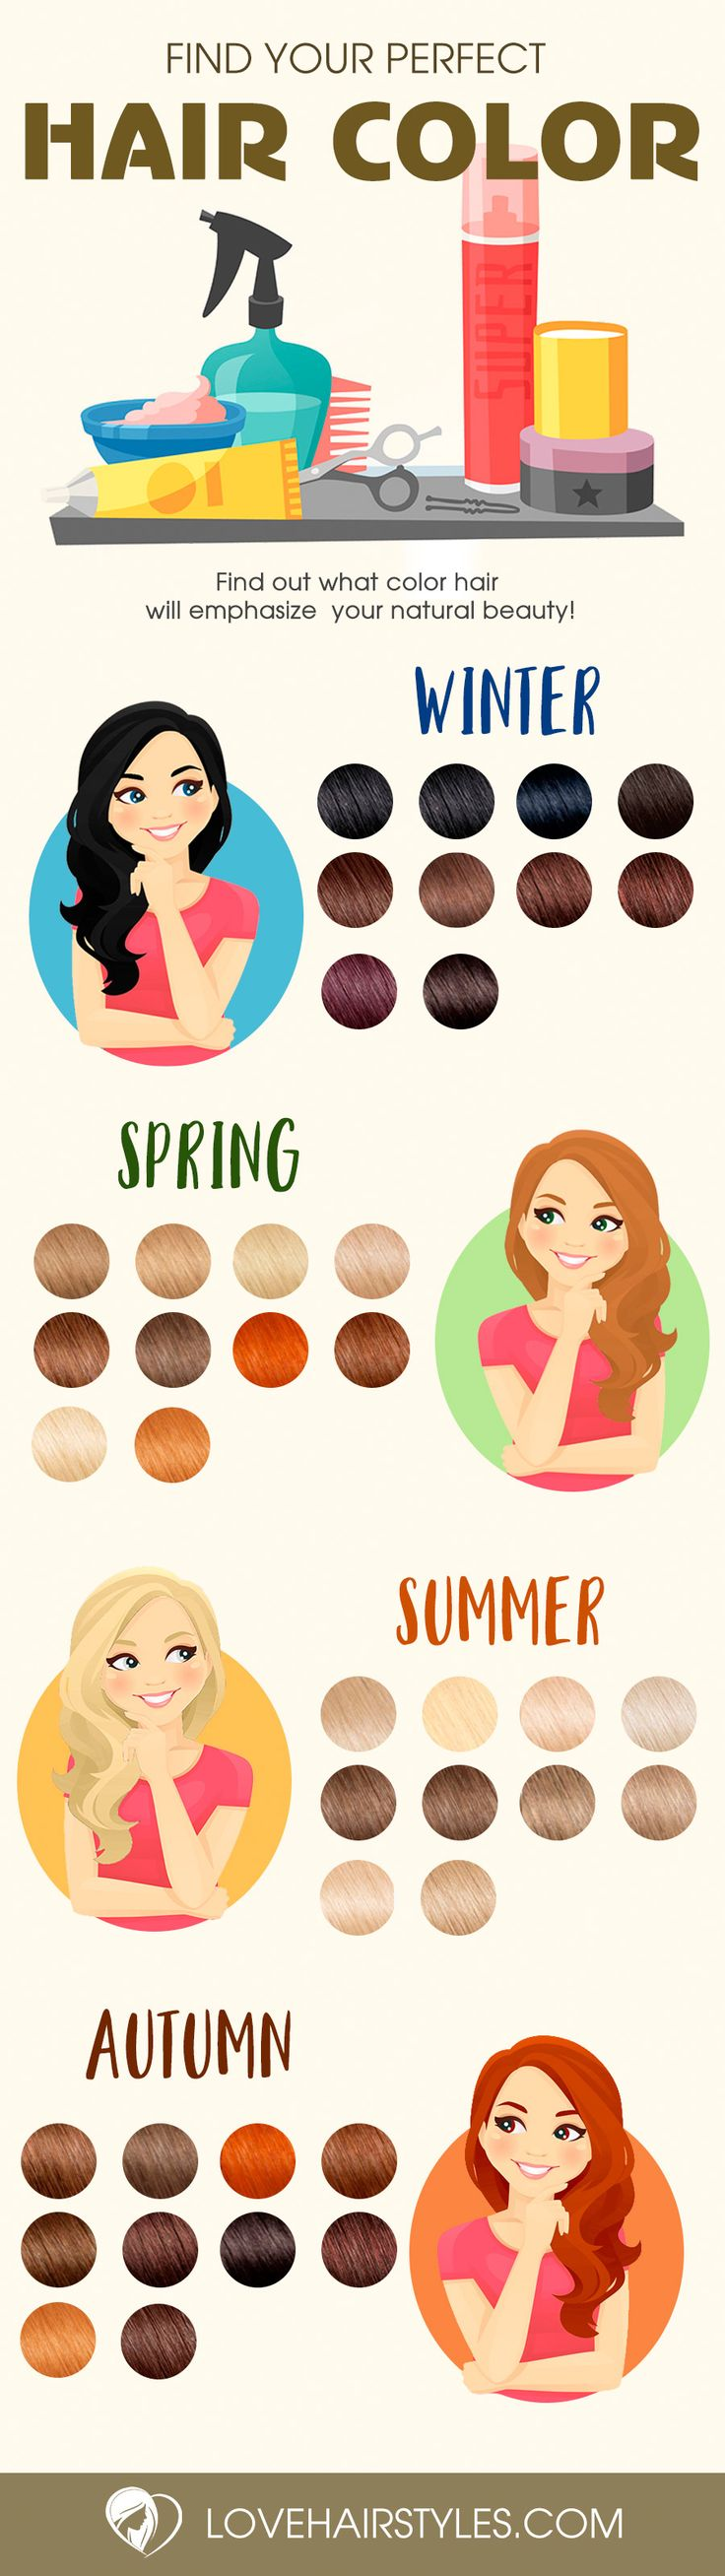 Trendy Hair Colors for Every Season 2017...